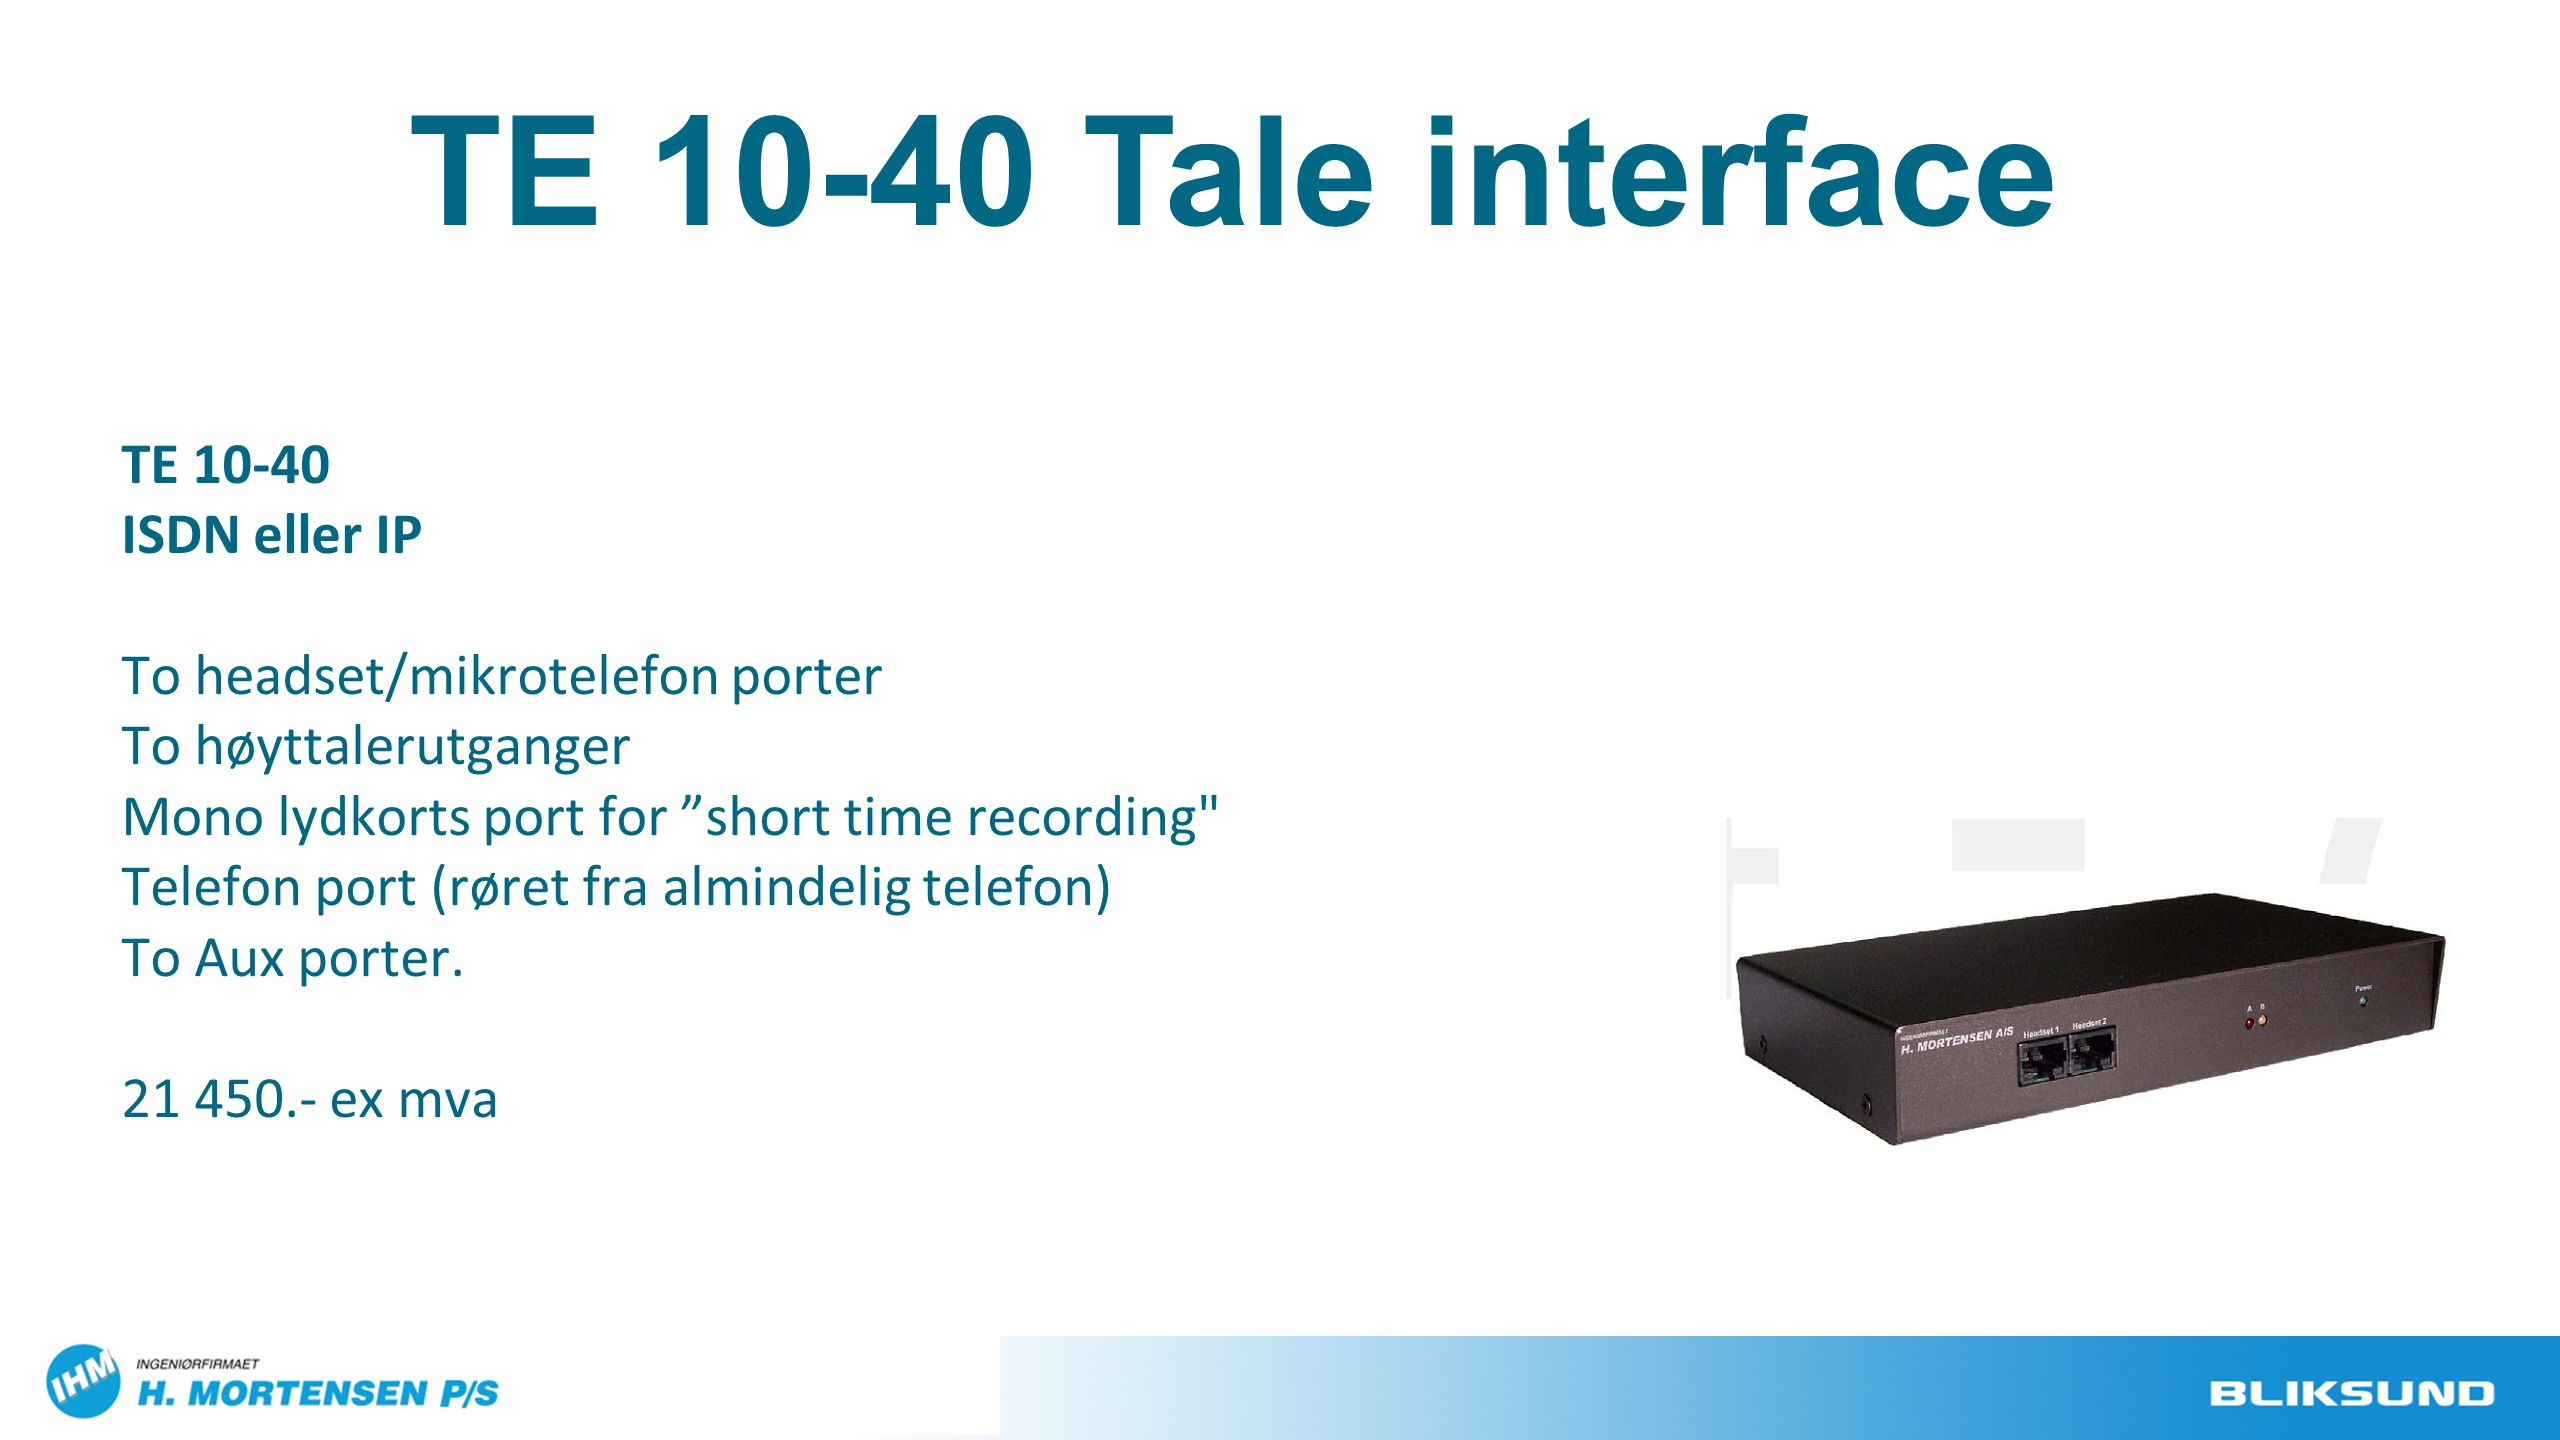 TE Tale interface